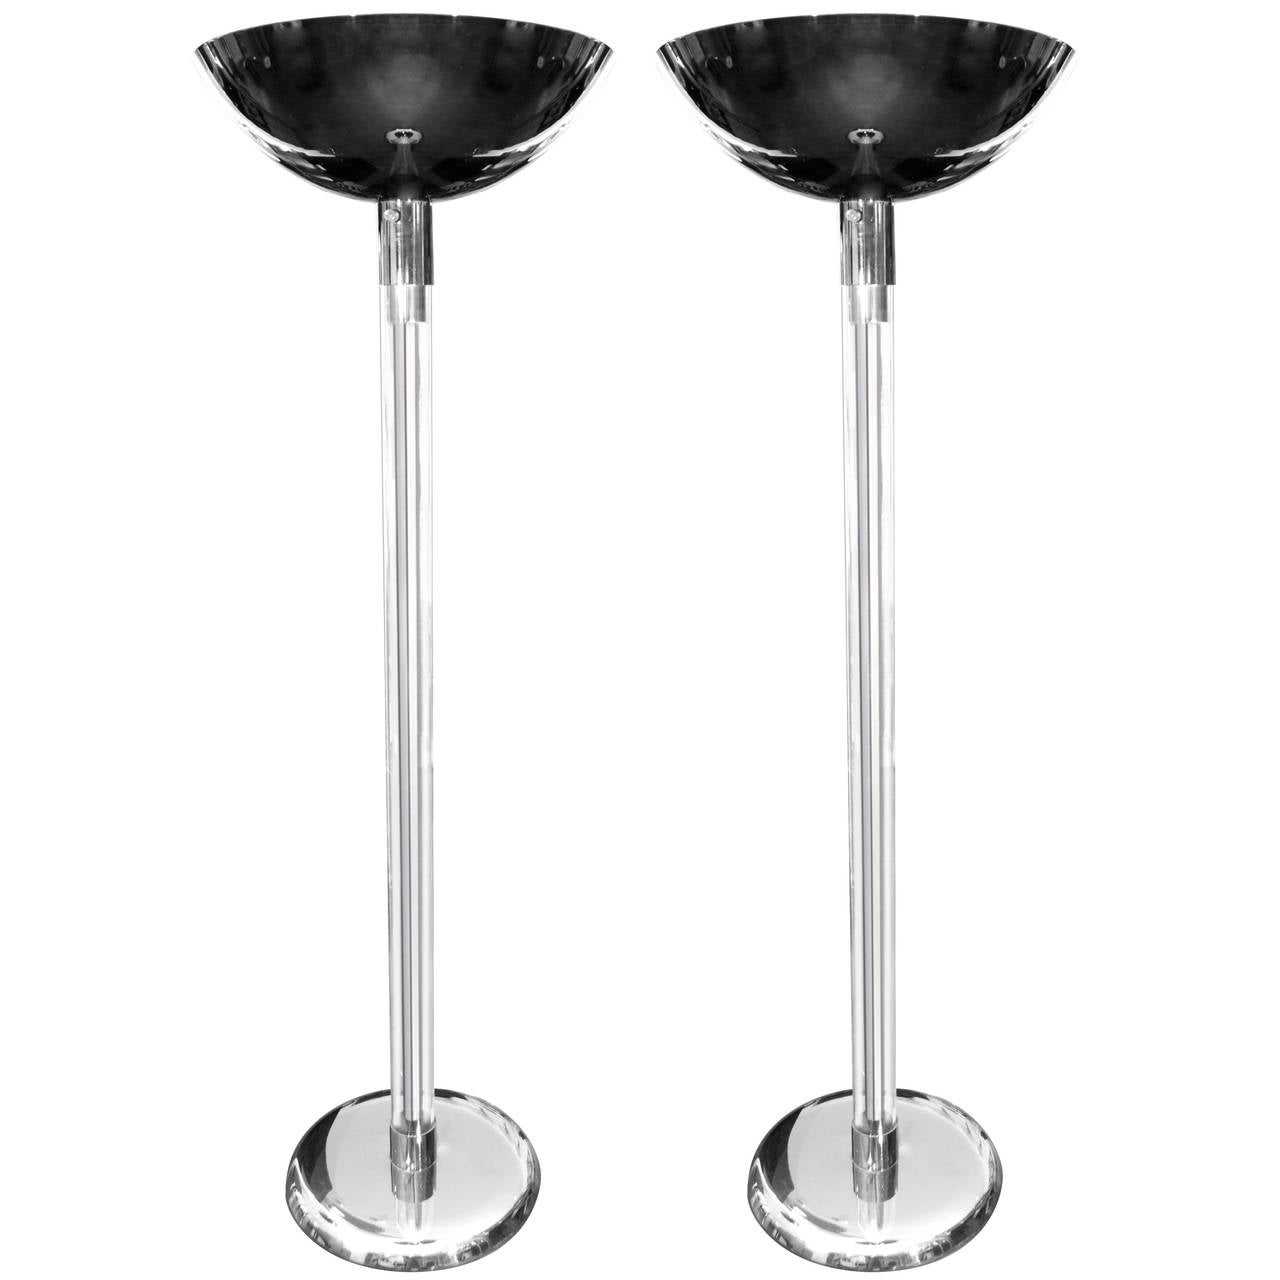 Pair of Lucite and Polished Gunmetal Torchieres by Karl Springer, circa 1970s